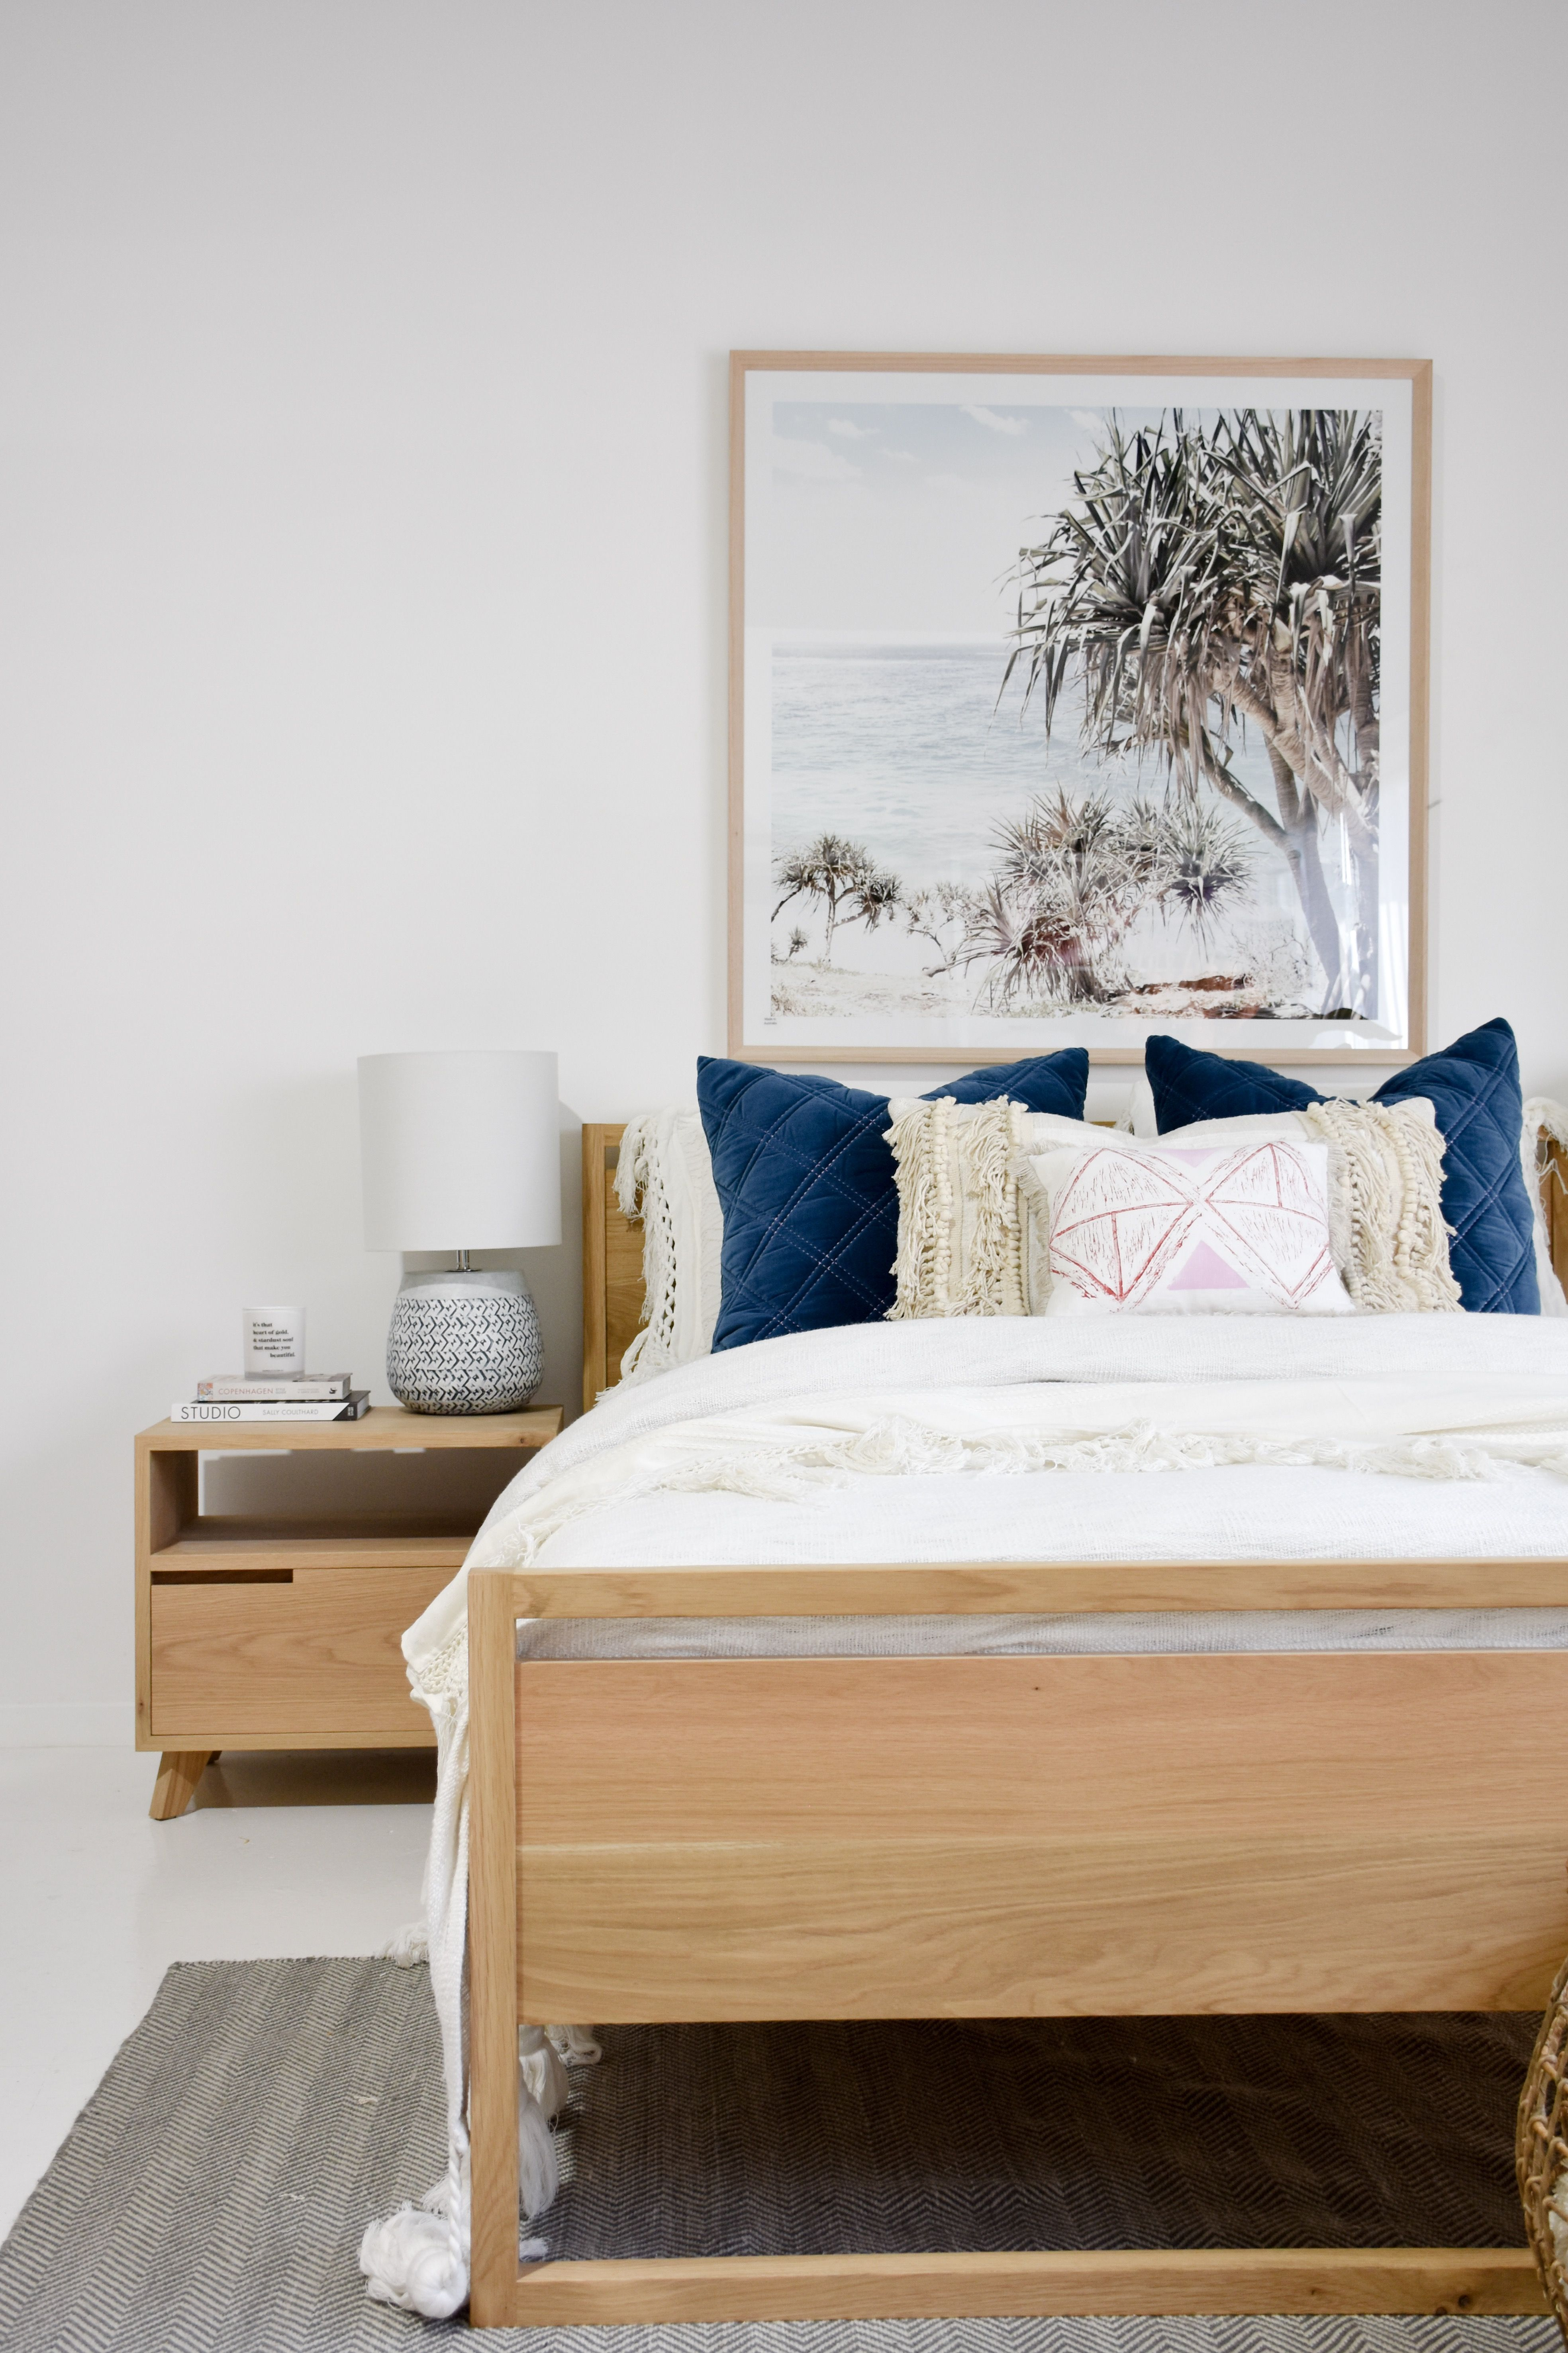 Our Dani Bed And Freja Bedside Tables Both In American Oak. Furniture,  Interior Decor